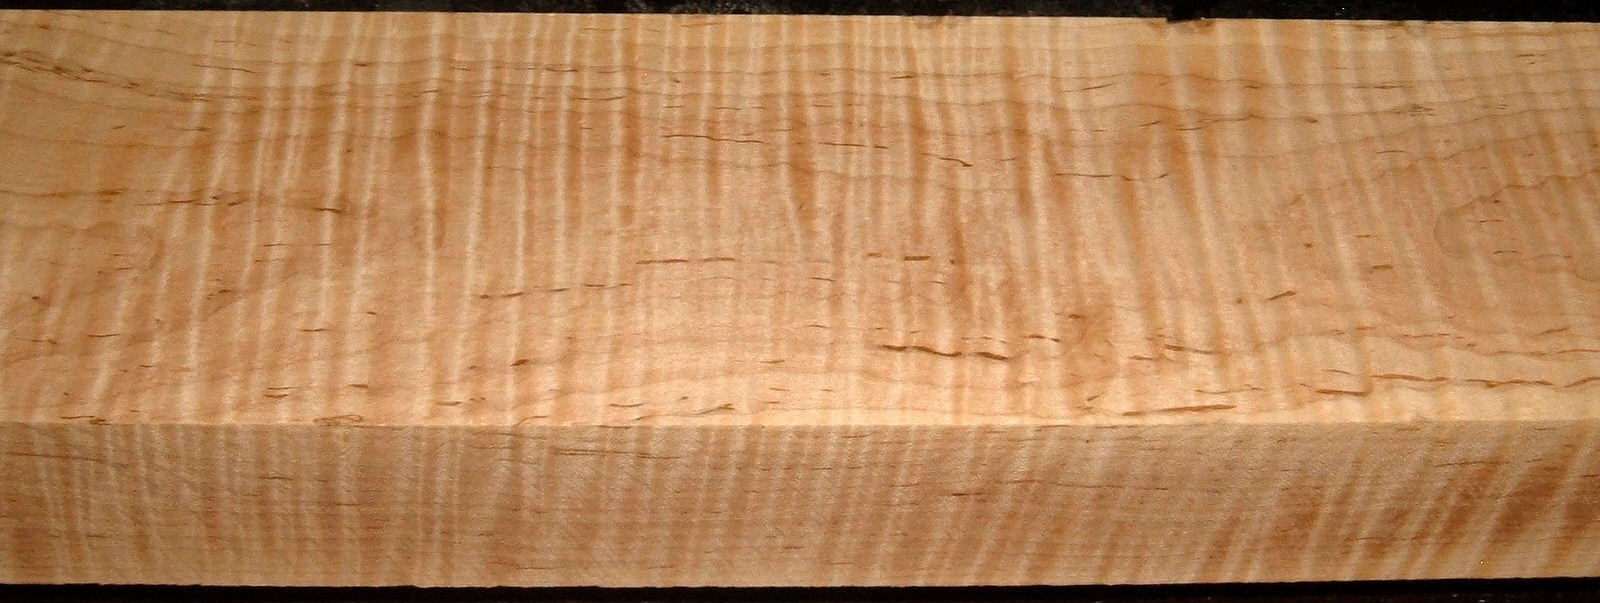 M2001-55, 2-5/16x5-1/4x45, Curly Tiger Maple